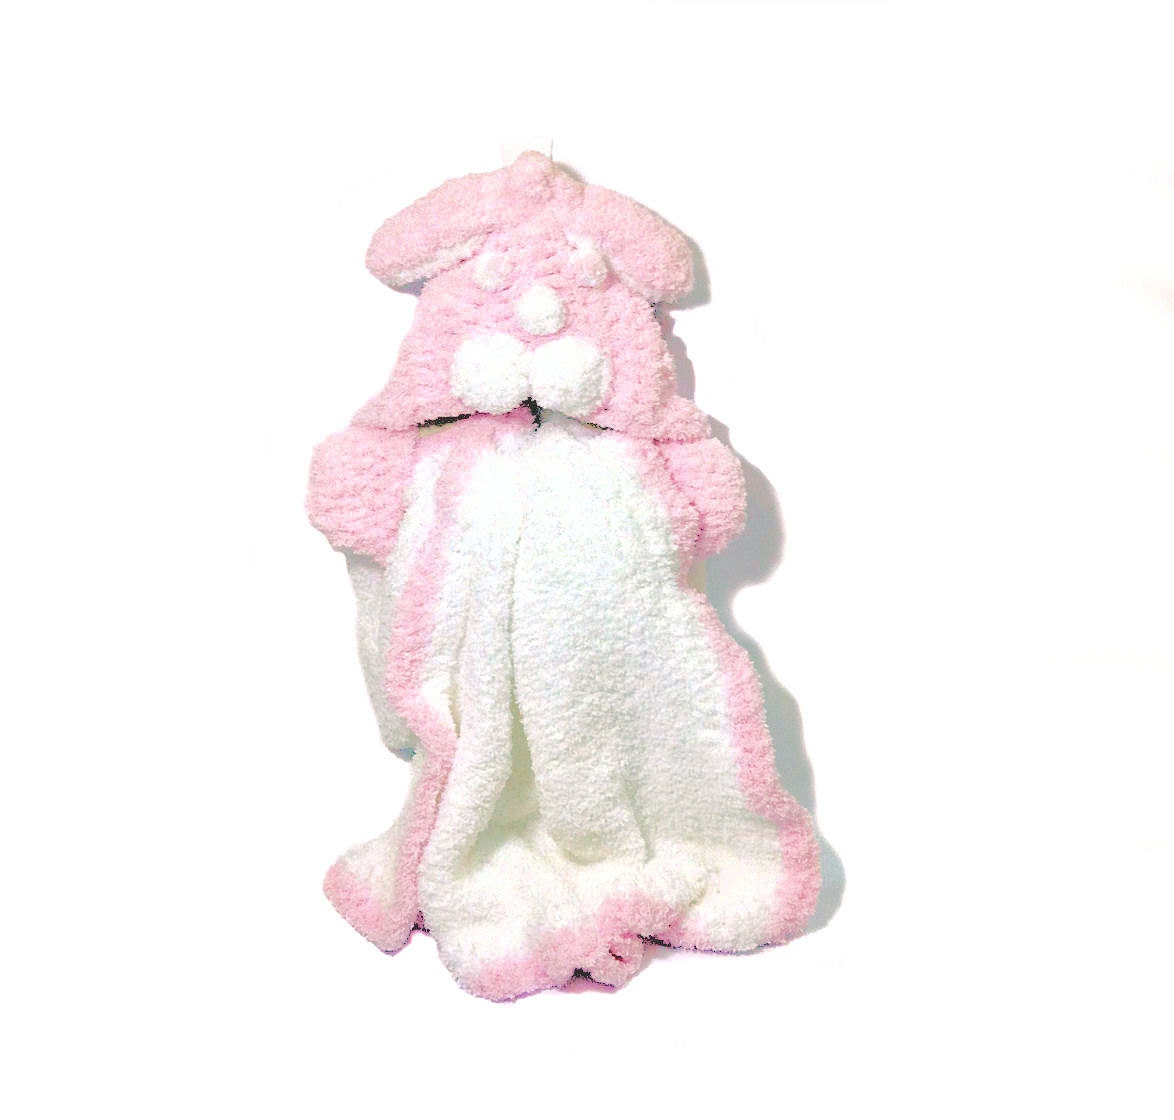 Hand Knit Hooded Blanket Bunny Intarsia -White Pink - bayahta